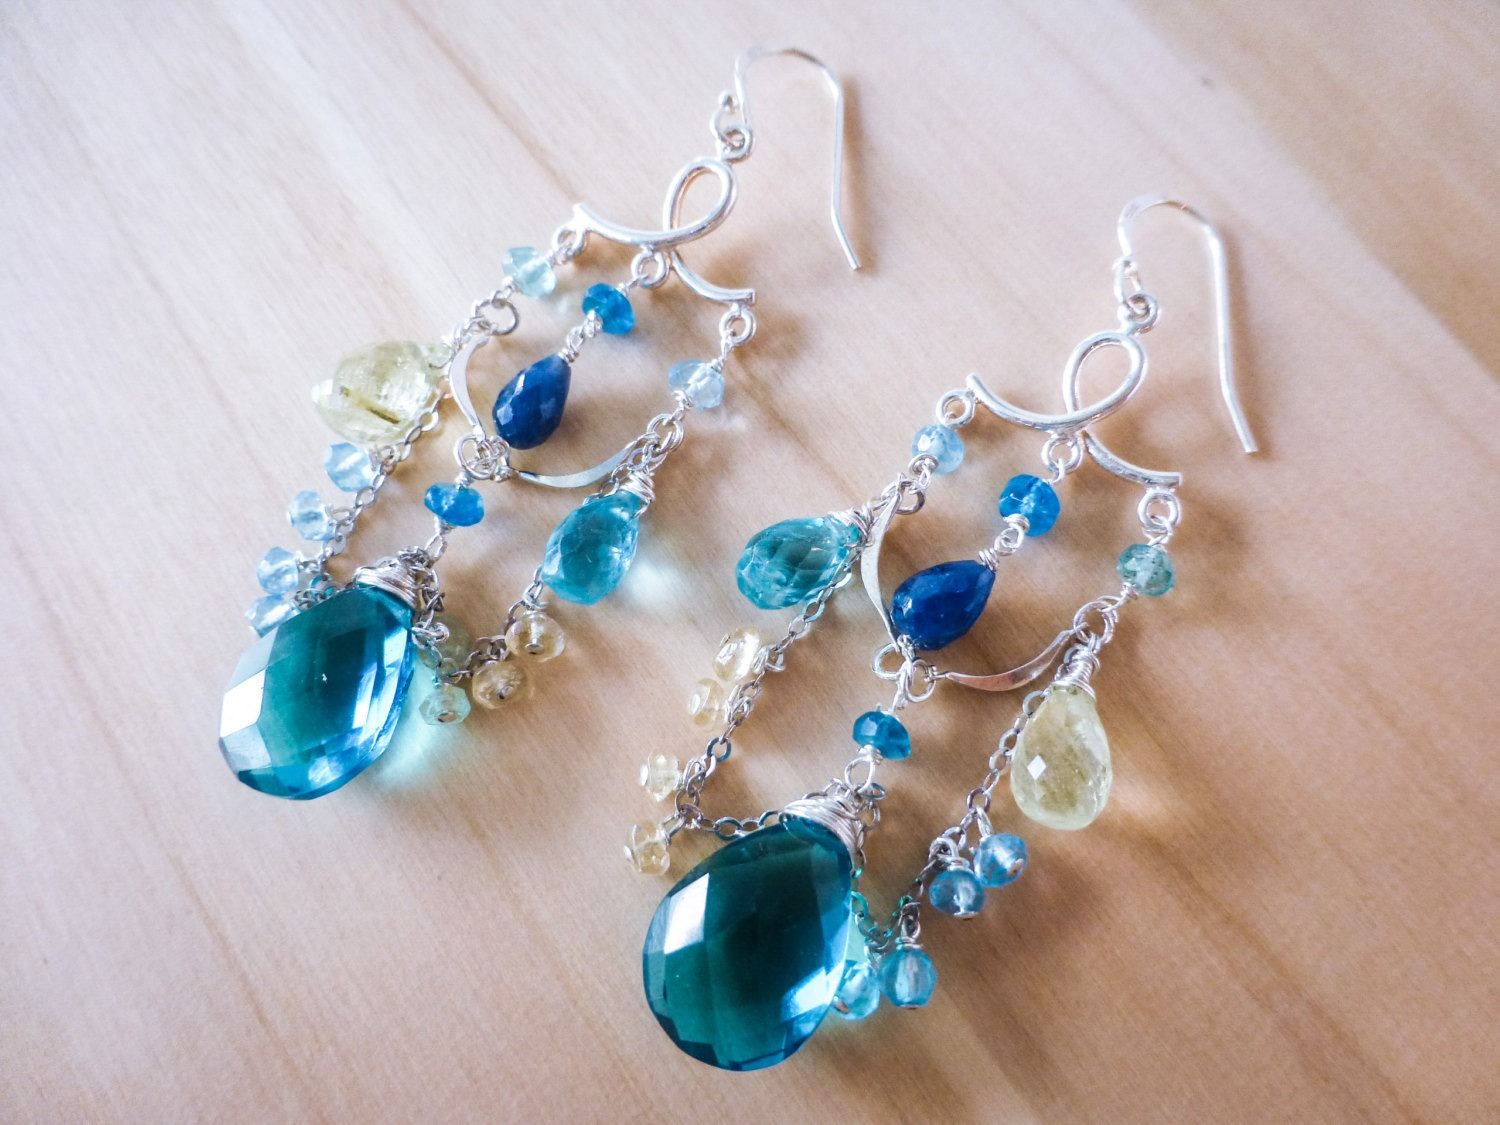 Teal blue topaz quartz with aquamarine and sapphires chandelier the bluebell earrings teal blue topaz quartz with aquamarine and sapphires chandelier earrings in silver mozeypictures Images